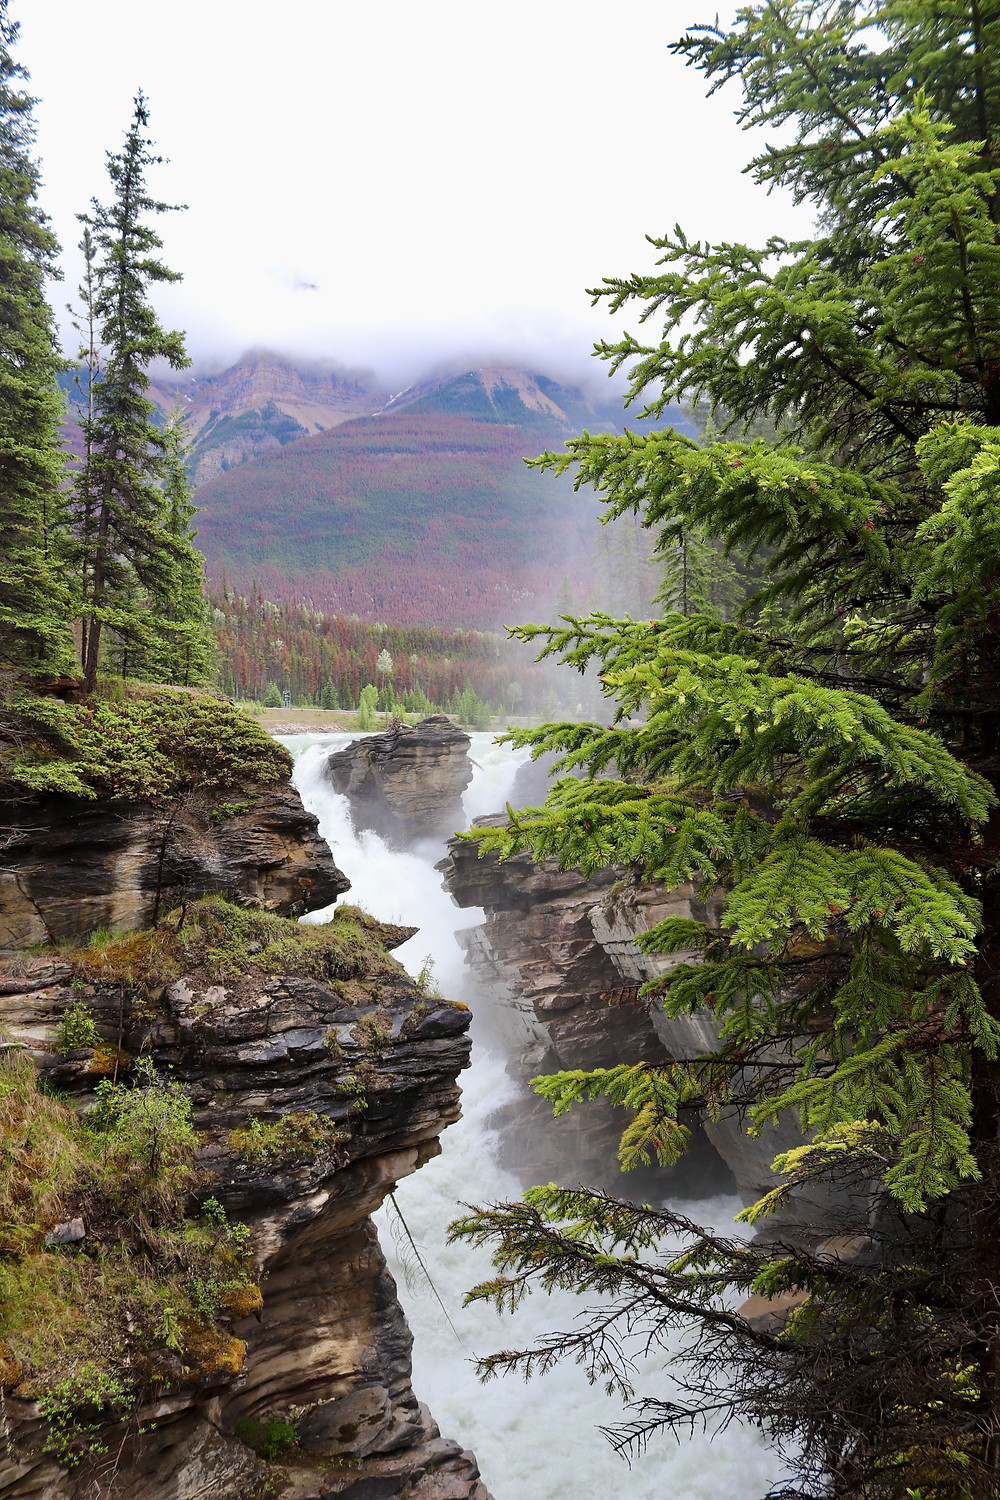 Athabasca River and Falls, Jasper National Park, Canada